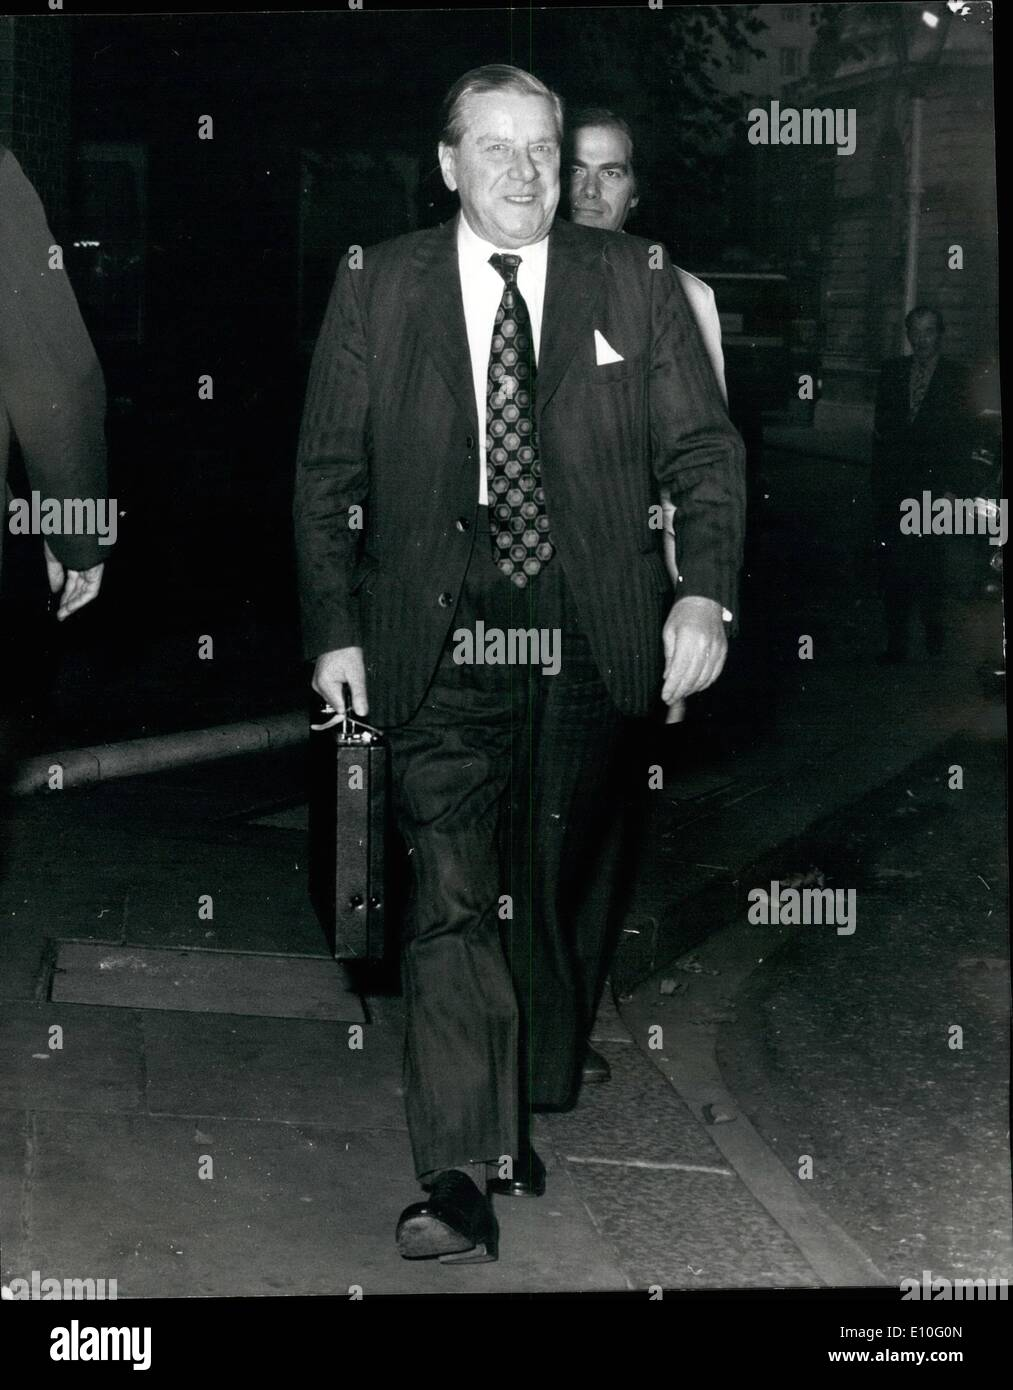 Oct. 10, 1972 - Talks At No.10: Talks were being held at No. 10 Downing Street today between the Government, the Trades Union Congress and the confederation of British Industries. Photo Shows: Mr. Vic Feather, general secretary of the T.U.C., arriving a No.10 this morning. - Stock Image